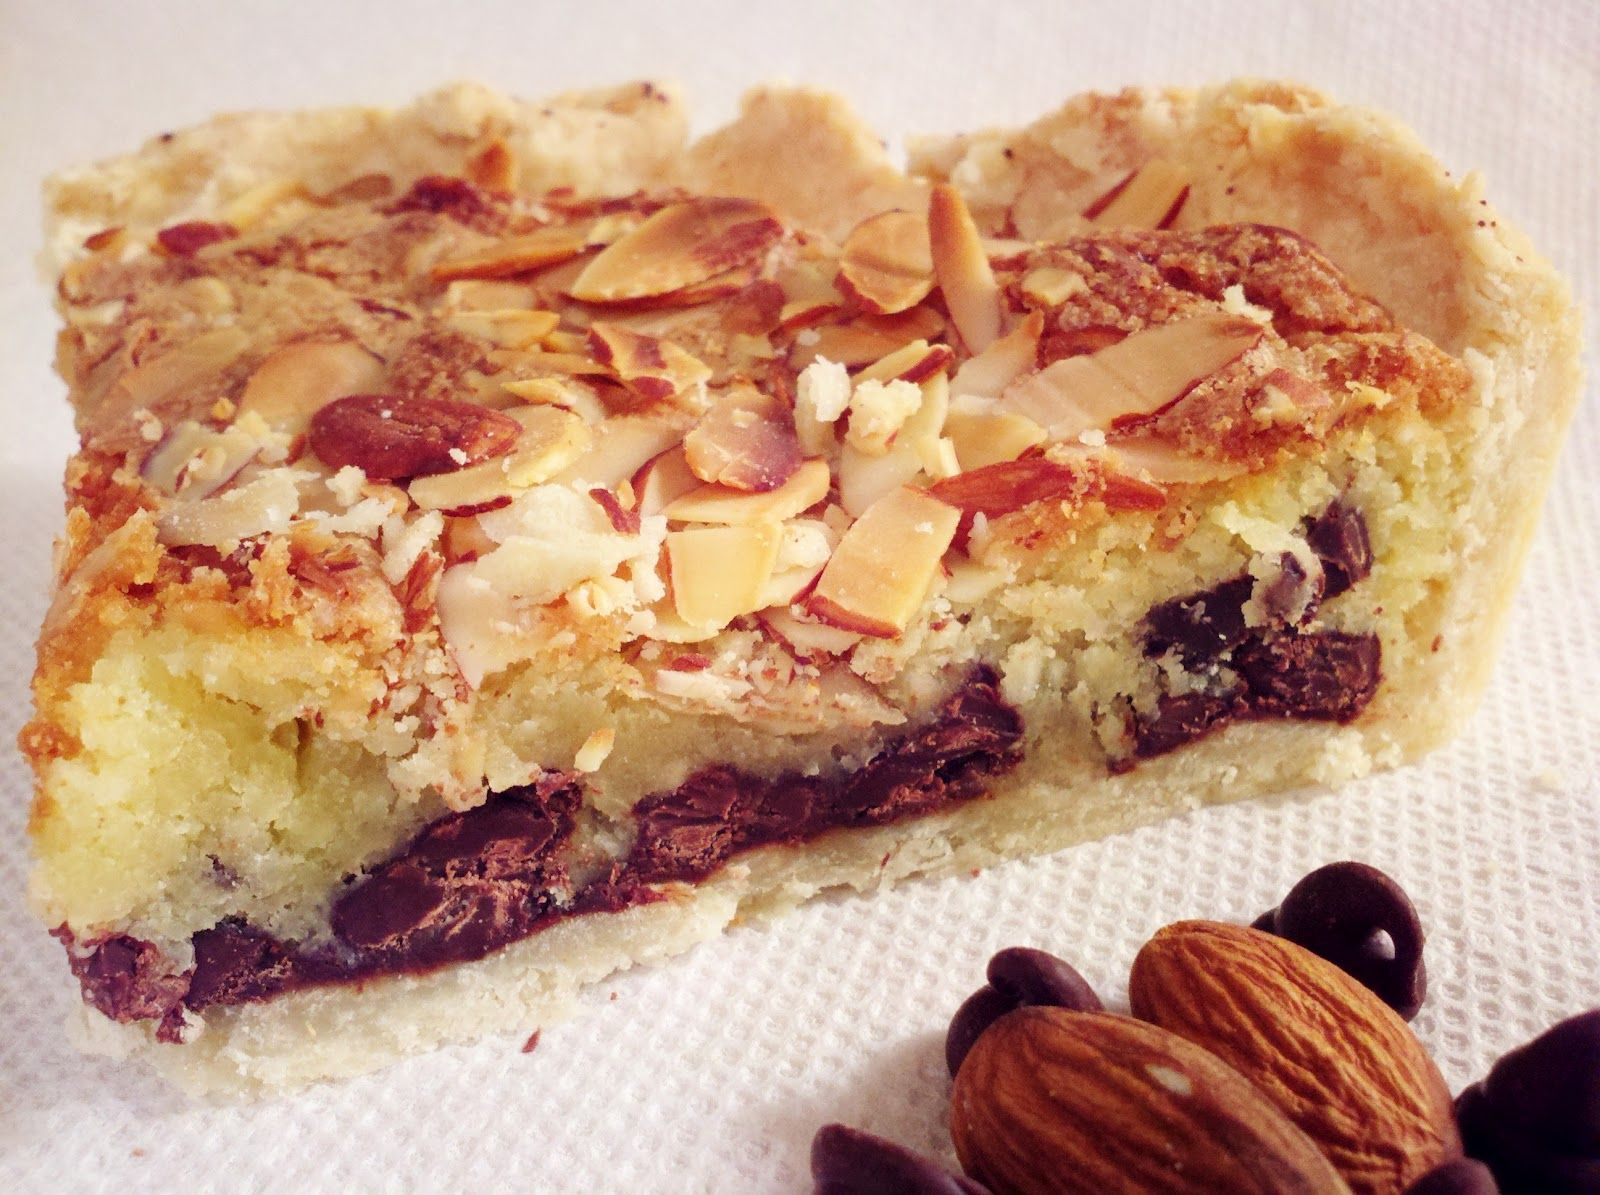 Healthy, One Recipe At a Time...: Chocolate Almond Pie